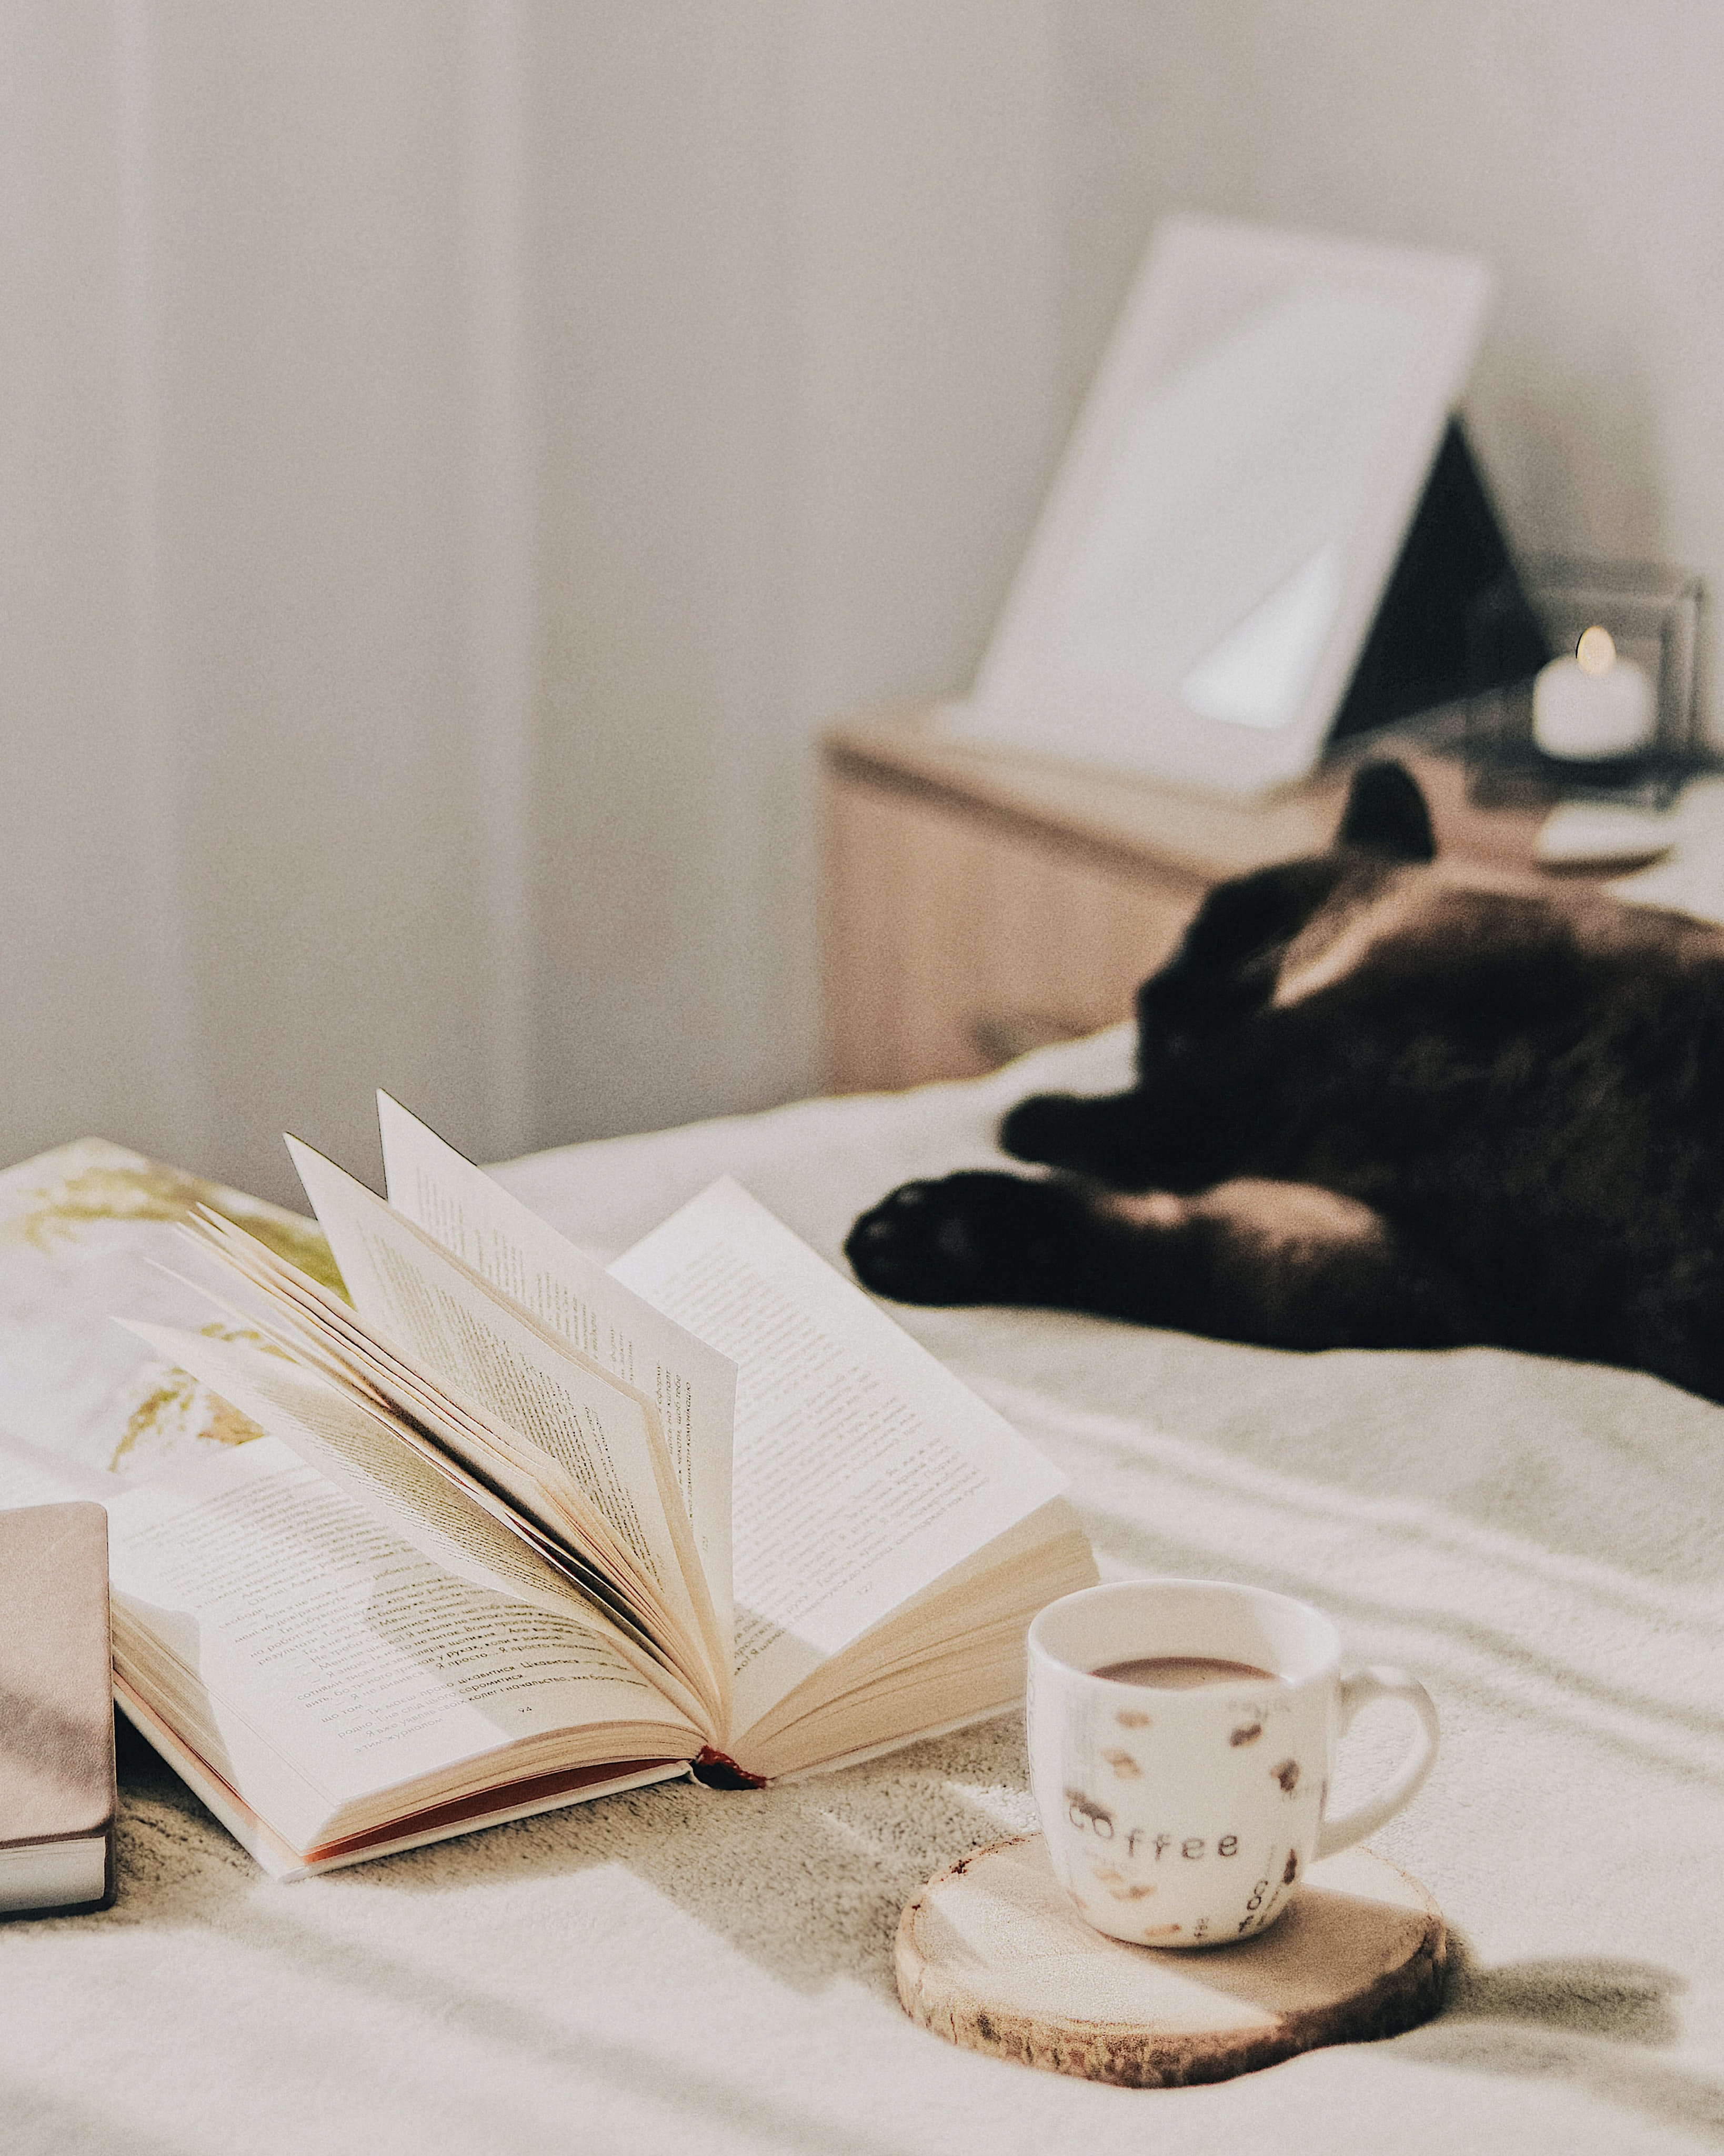 141484 download wallpaper Miscellanea, Miscellaneous, Cup, Coffee, Book, Pages, Page, Cat screensavers and pictures for free